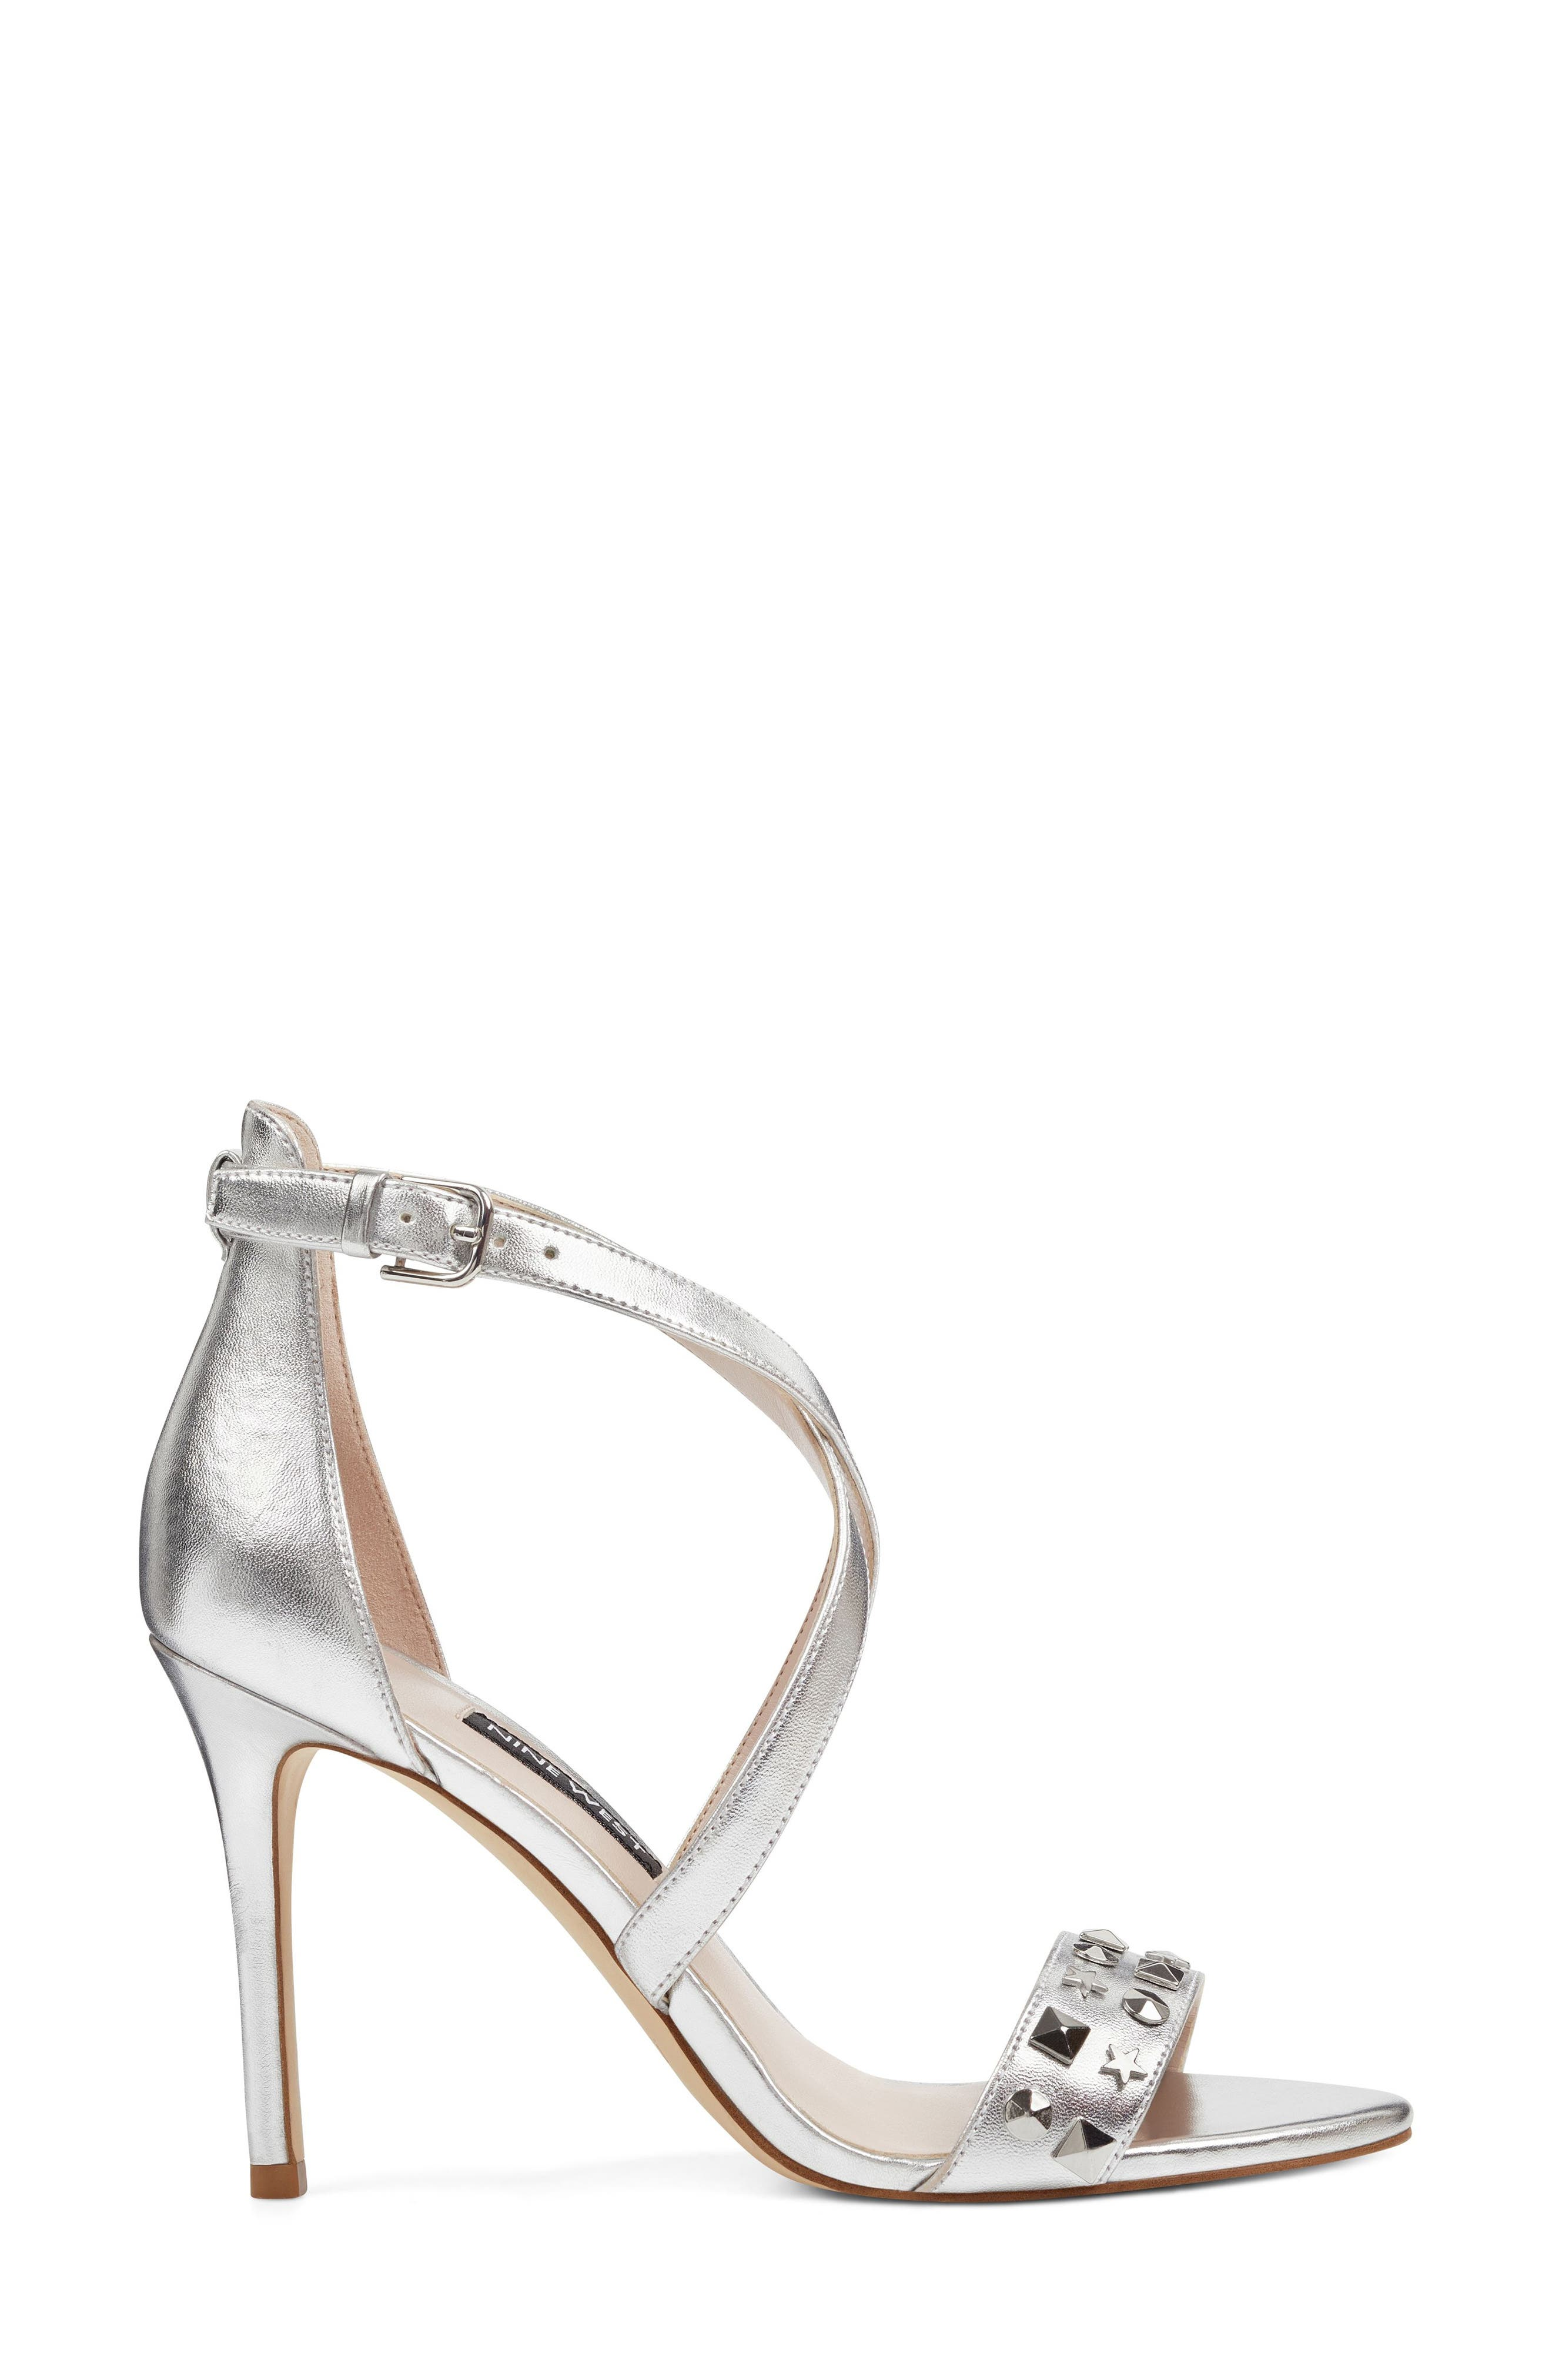 Maziany Studded Sandal,                             Alternate thumbnail 3, color,                             Silver Faux Leather